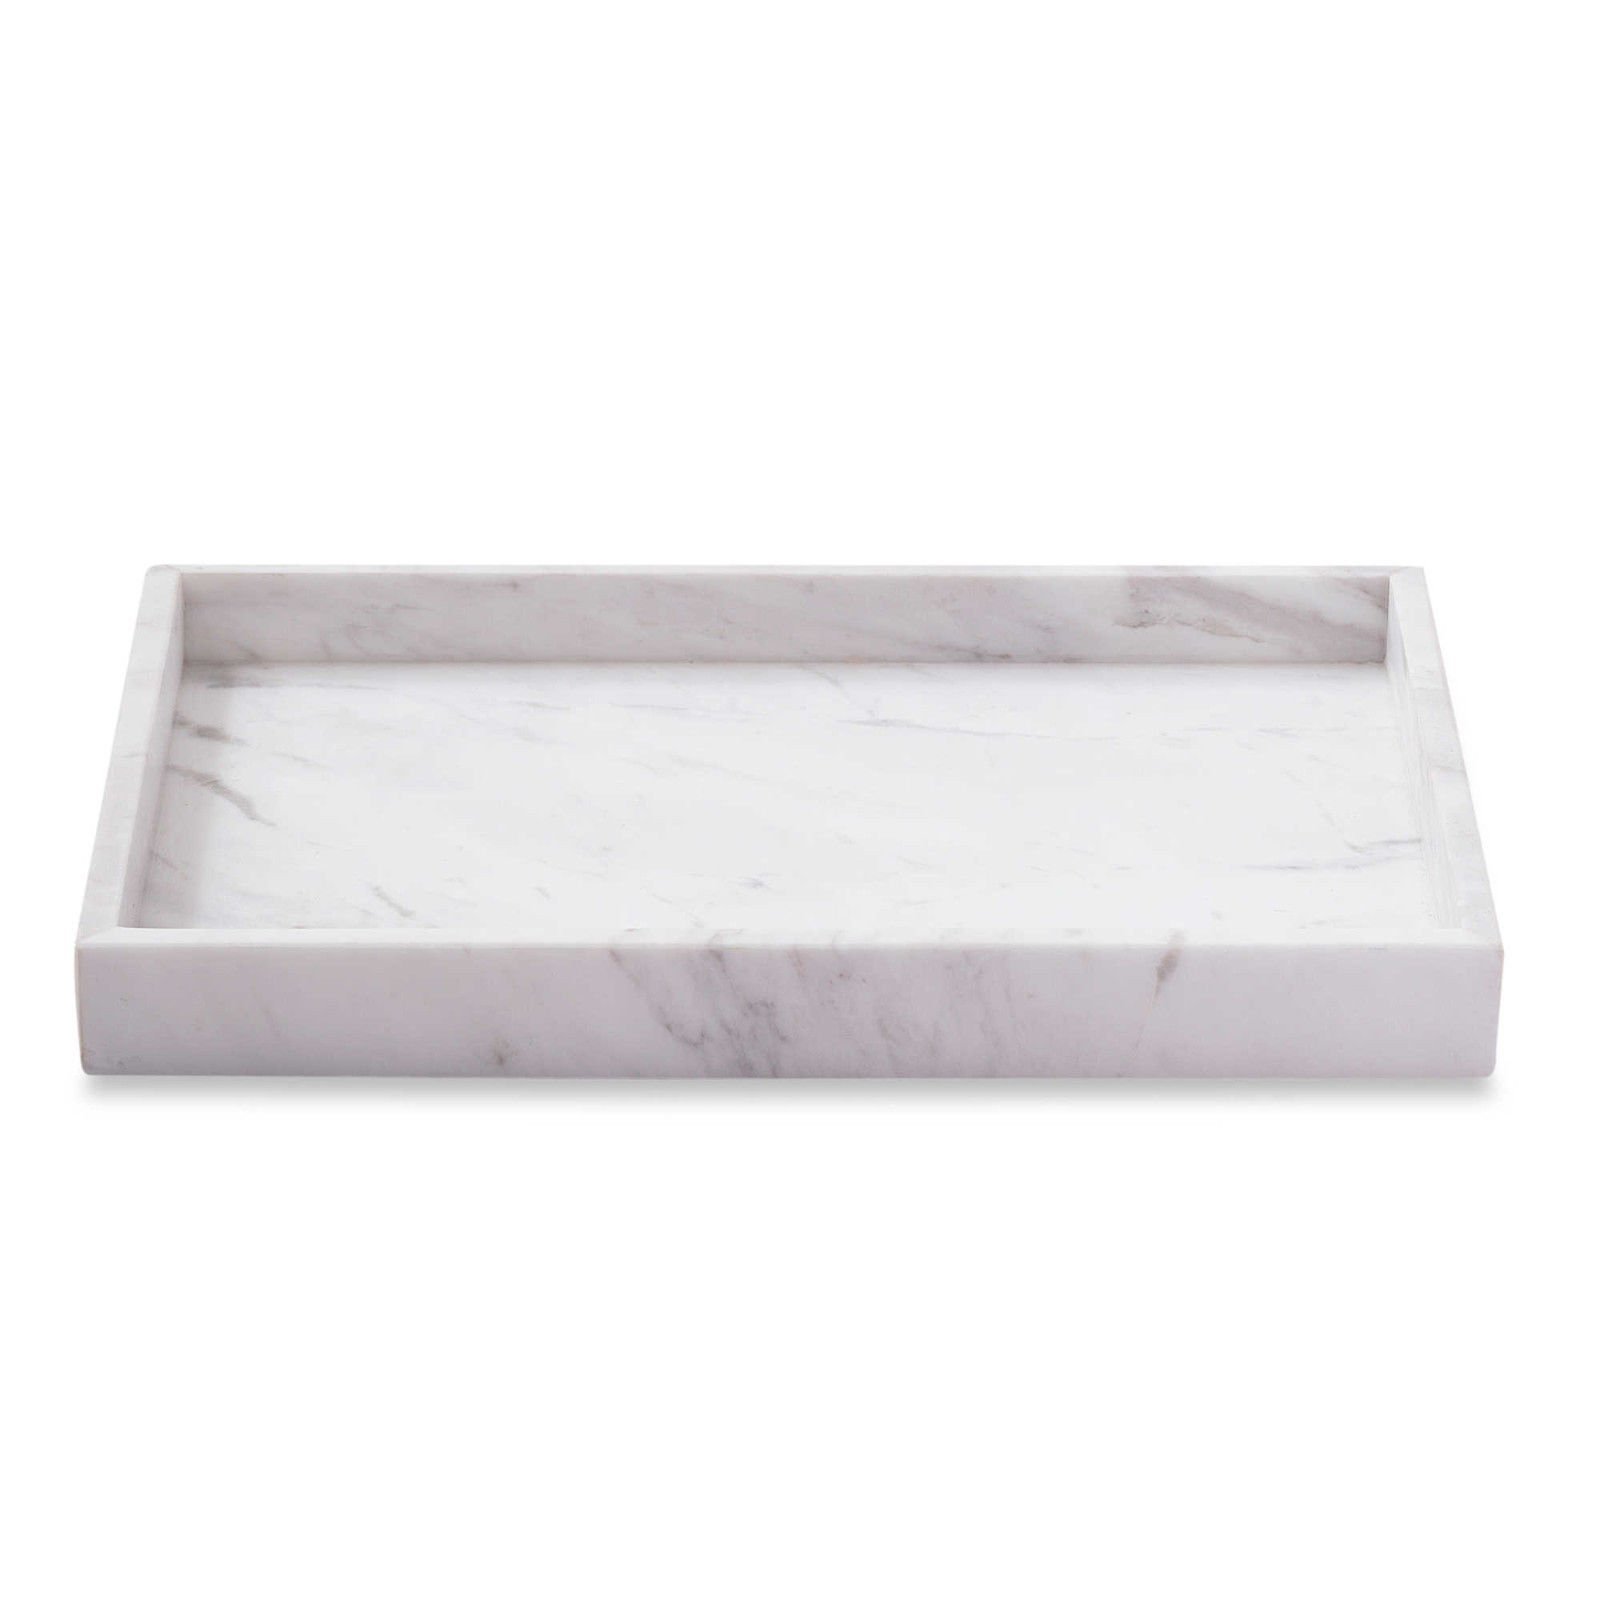 Genuine White Marble Vanity Tray Guest Towels Perfume Bathroom Chic Spa Decor by RX-789 (Image #1)